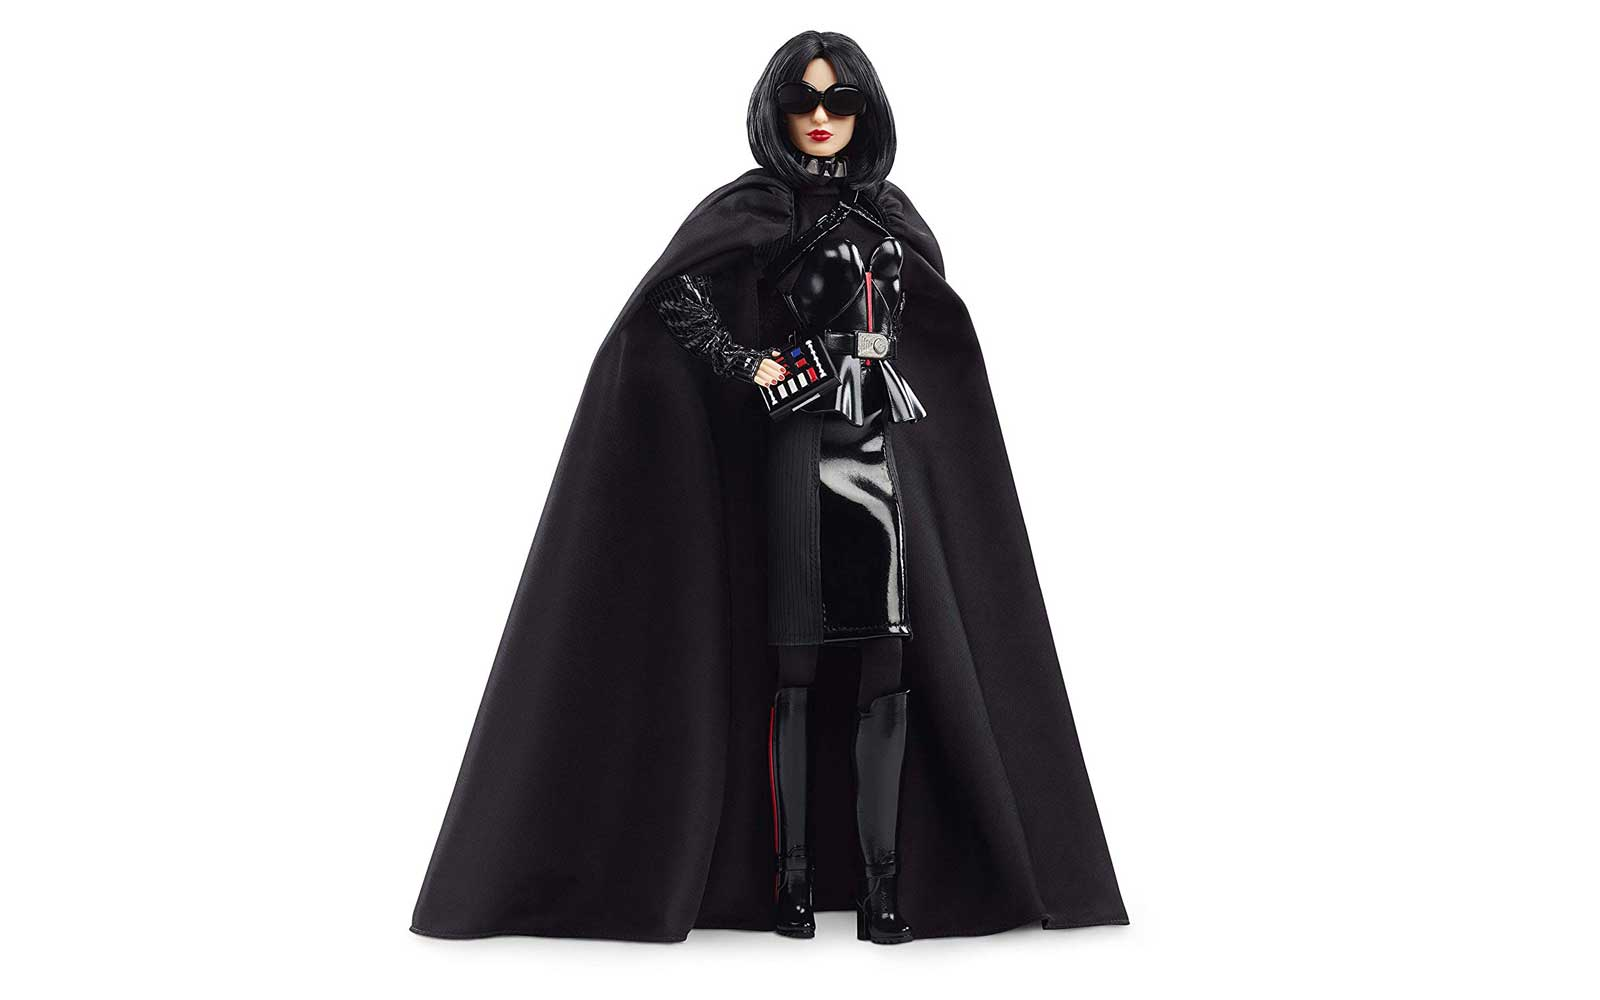 Darth Vadar Star Wars Barbie Doll